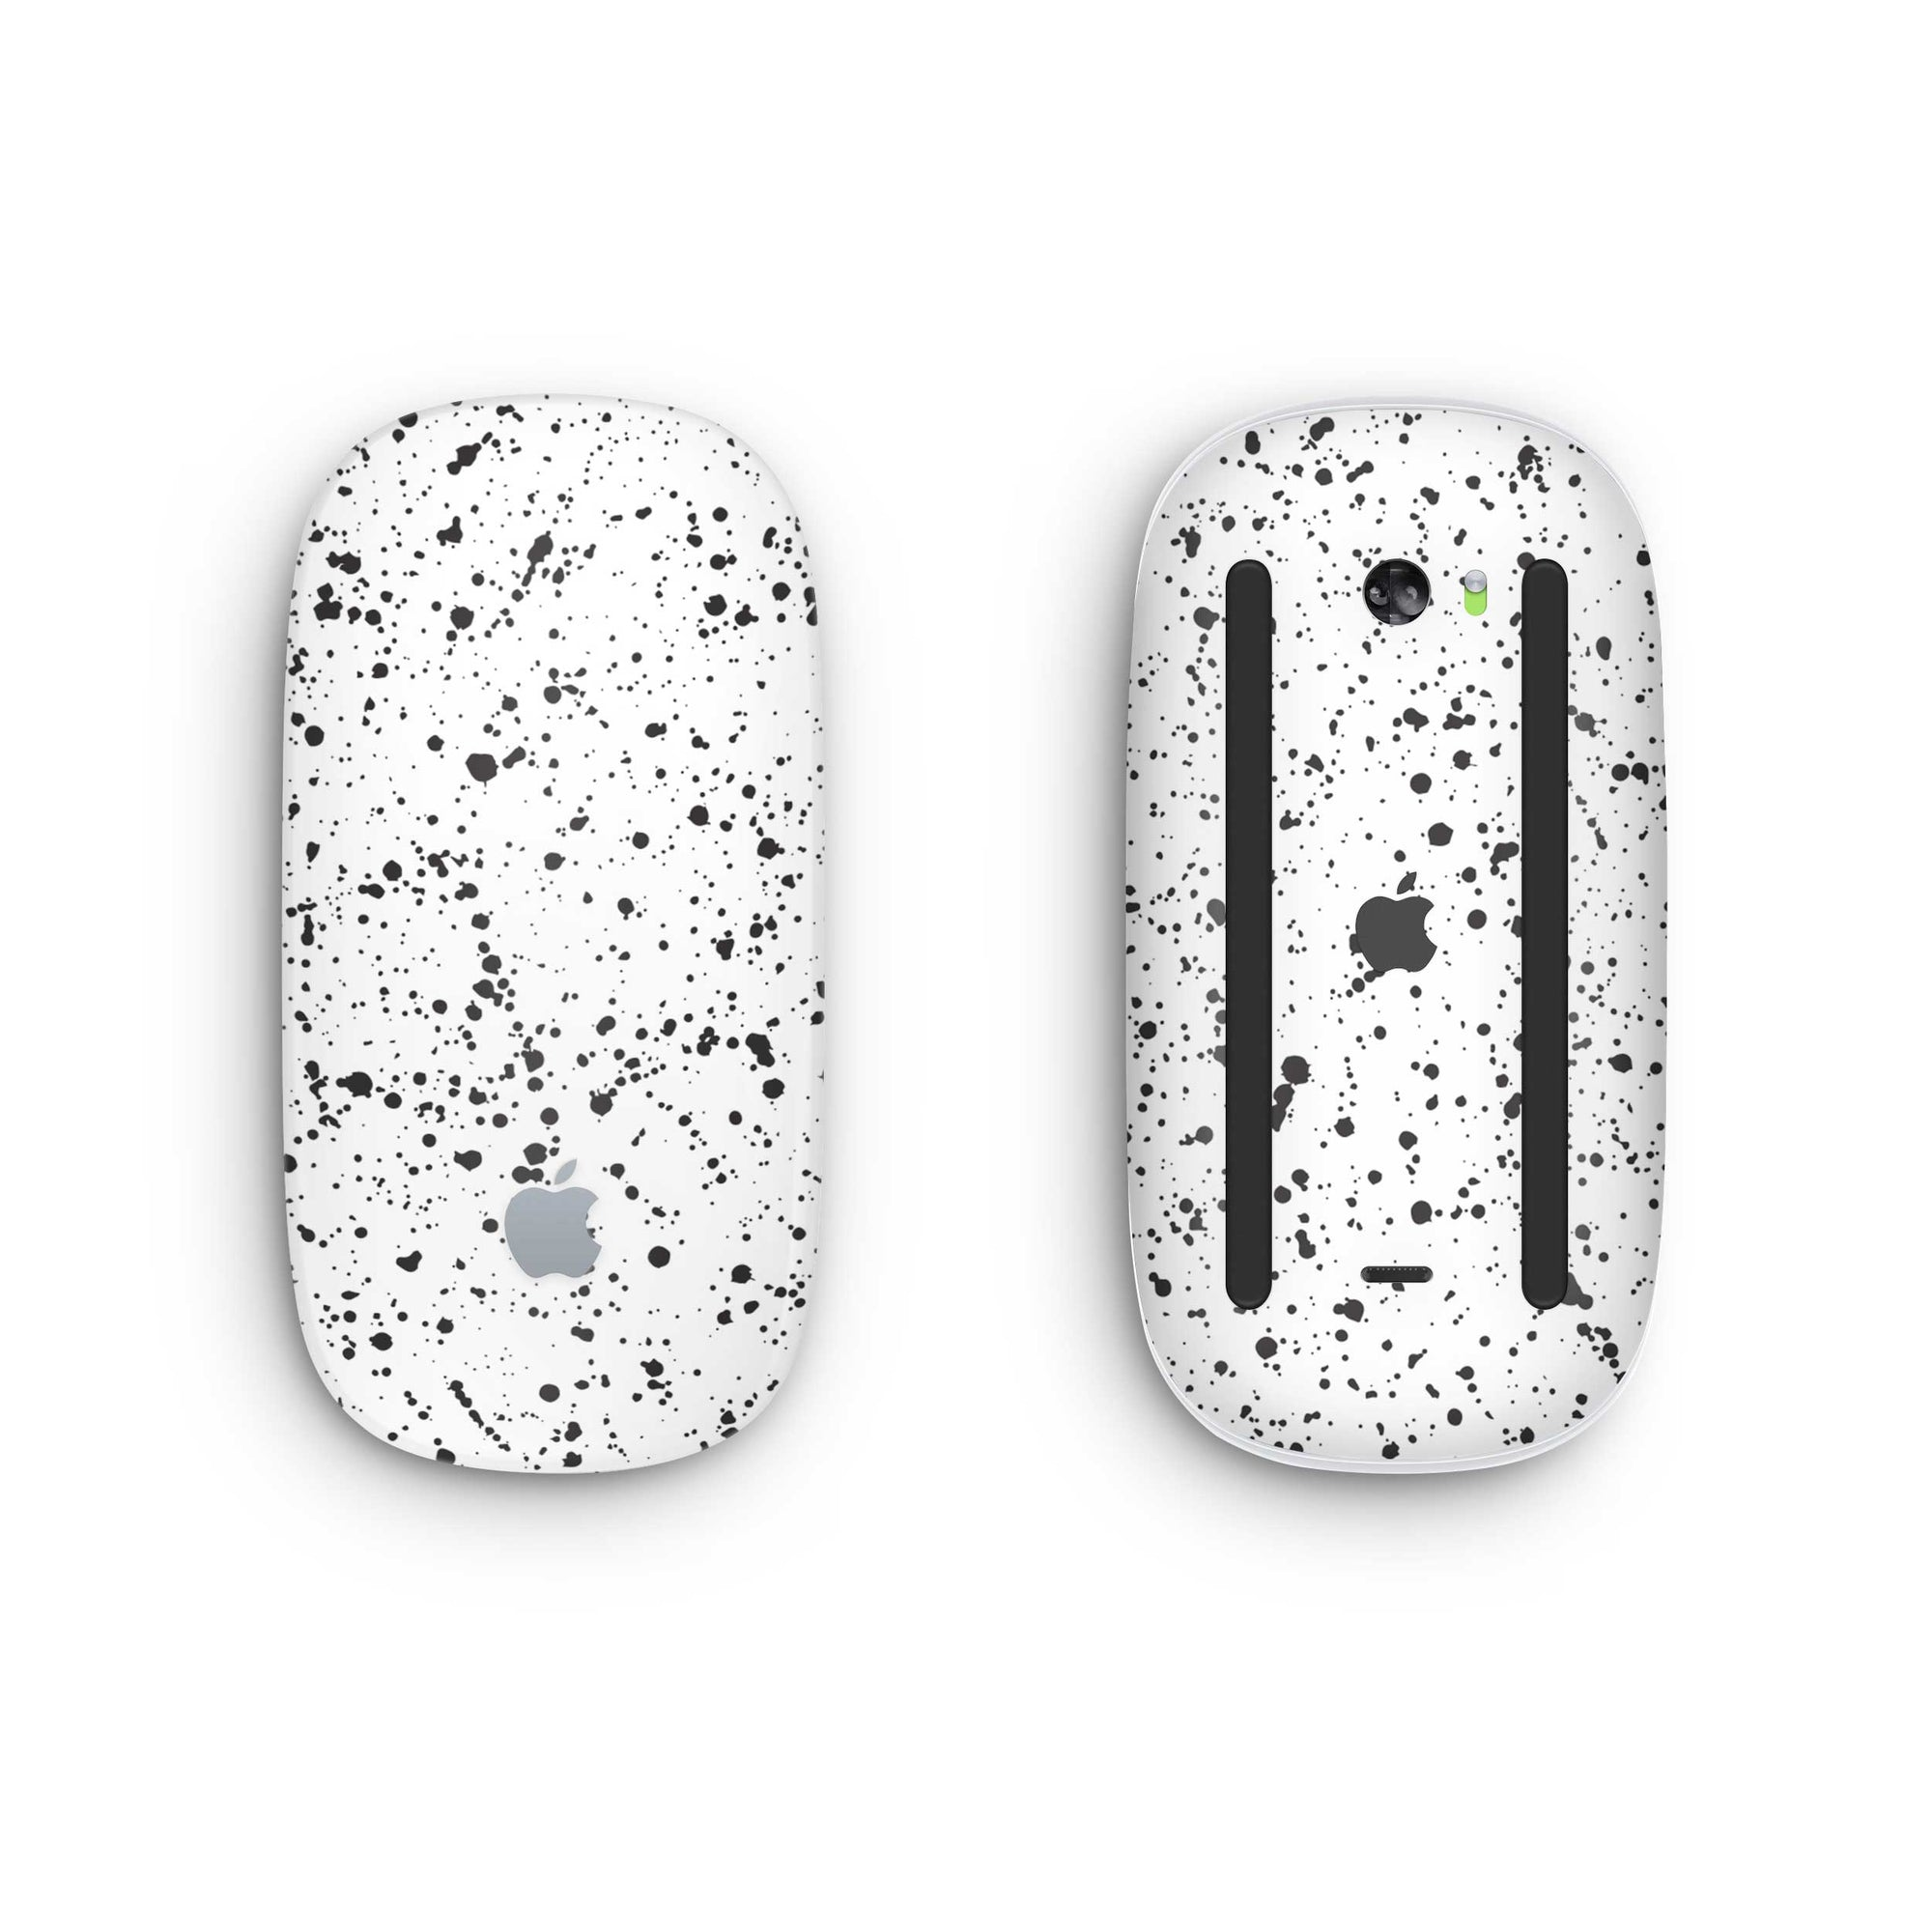 White Speckle Magic Mouse 2 Skin